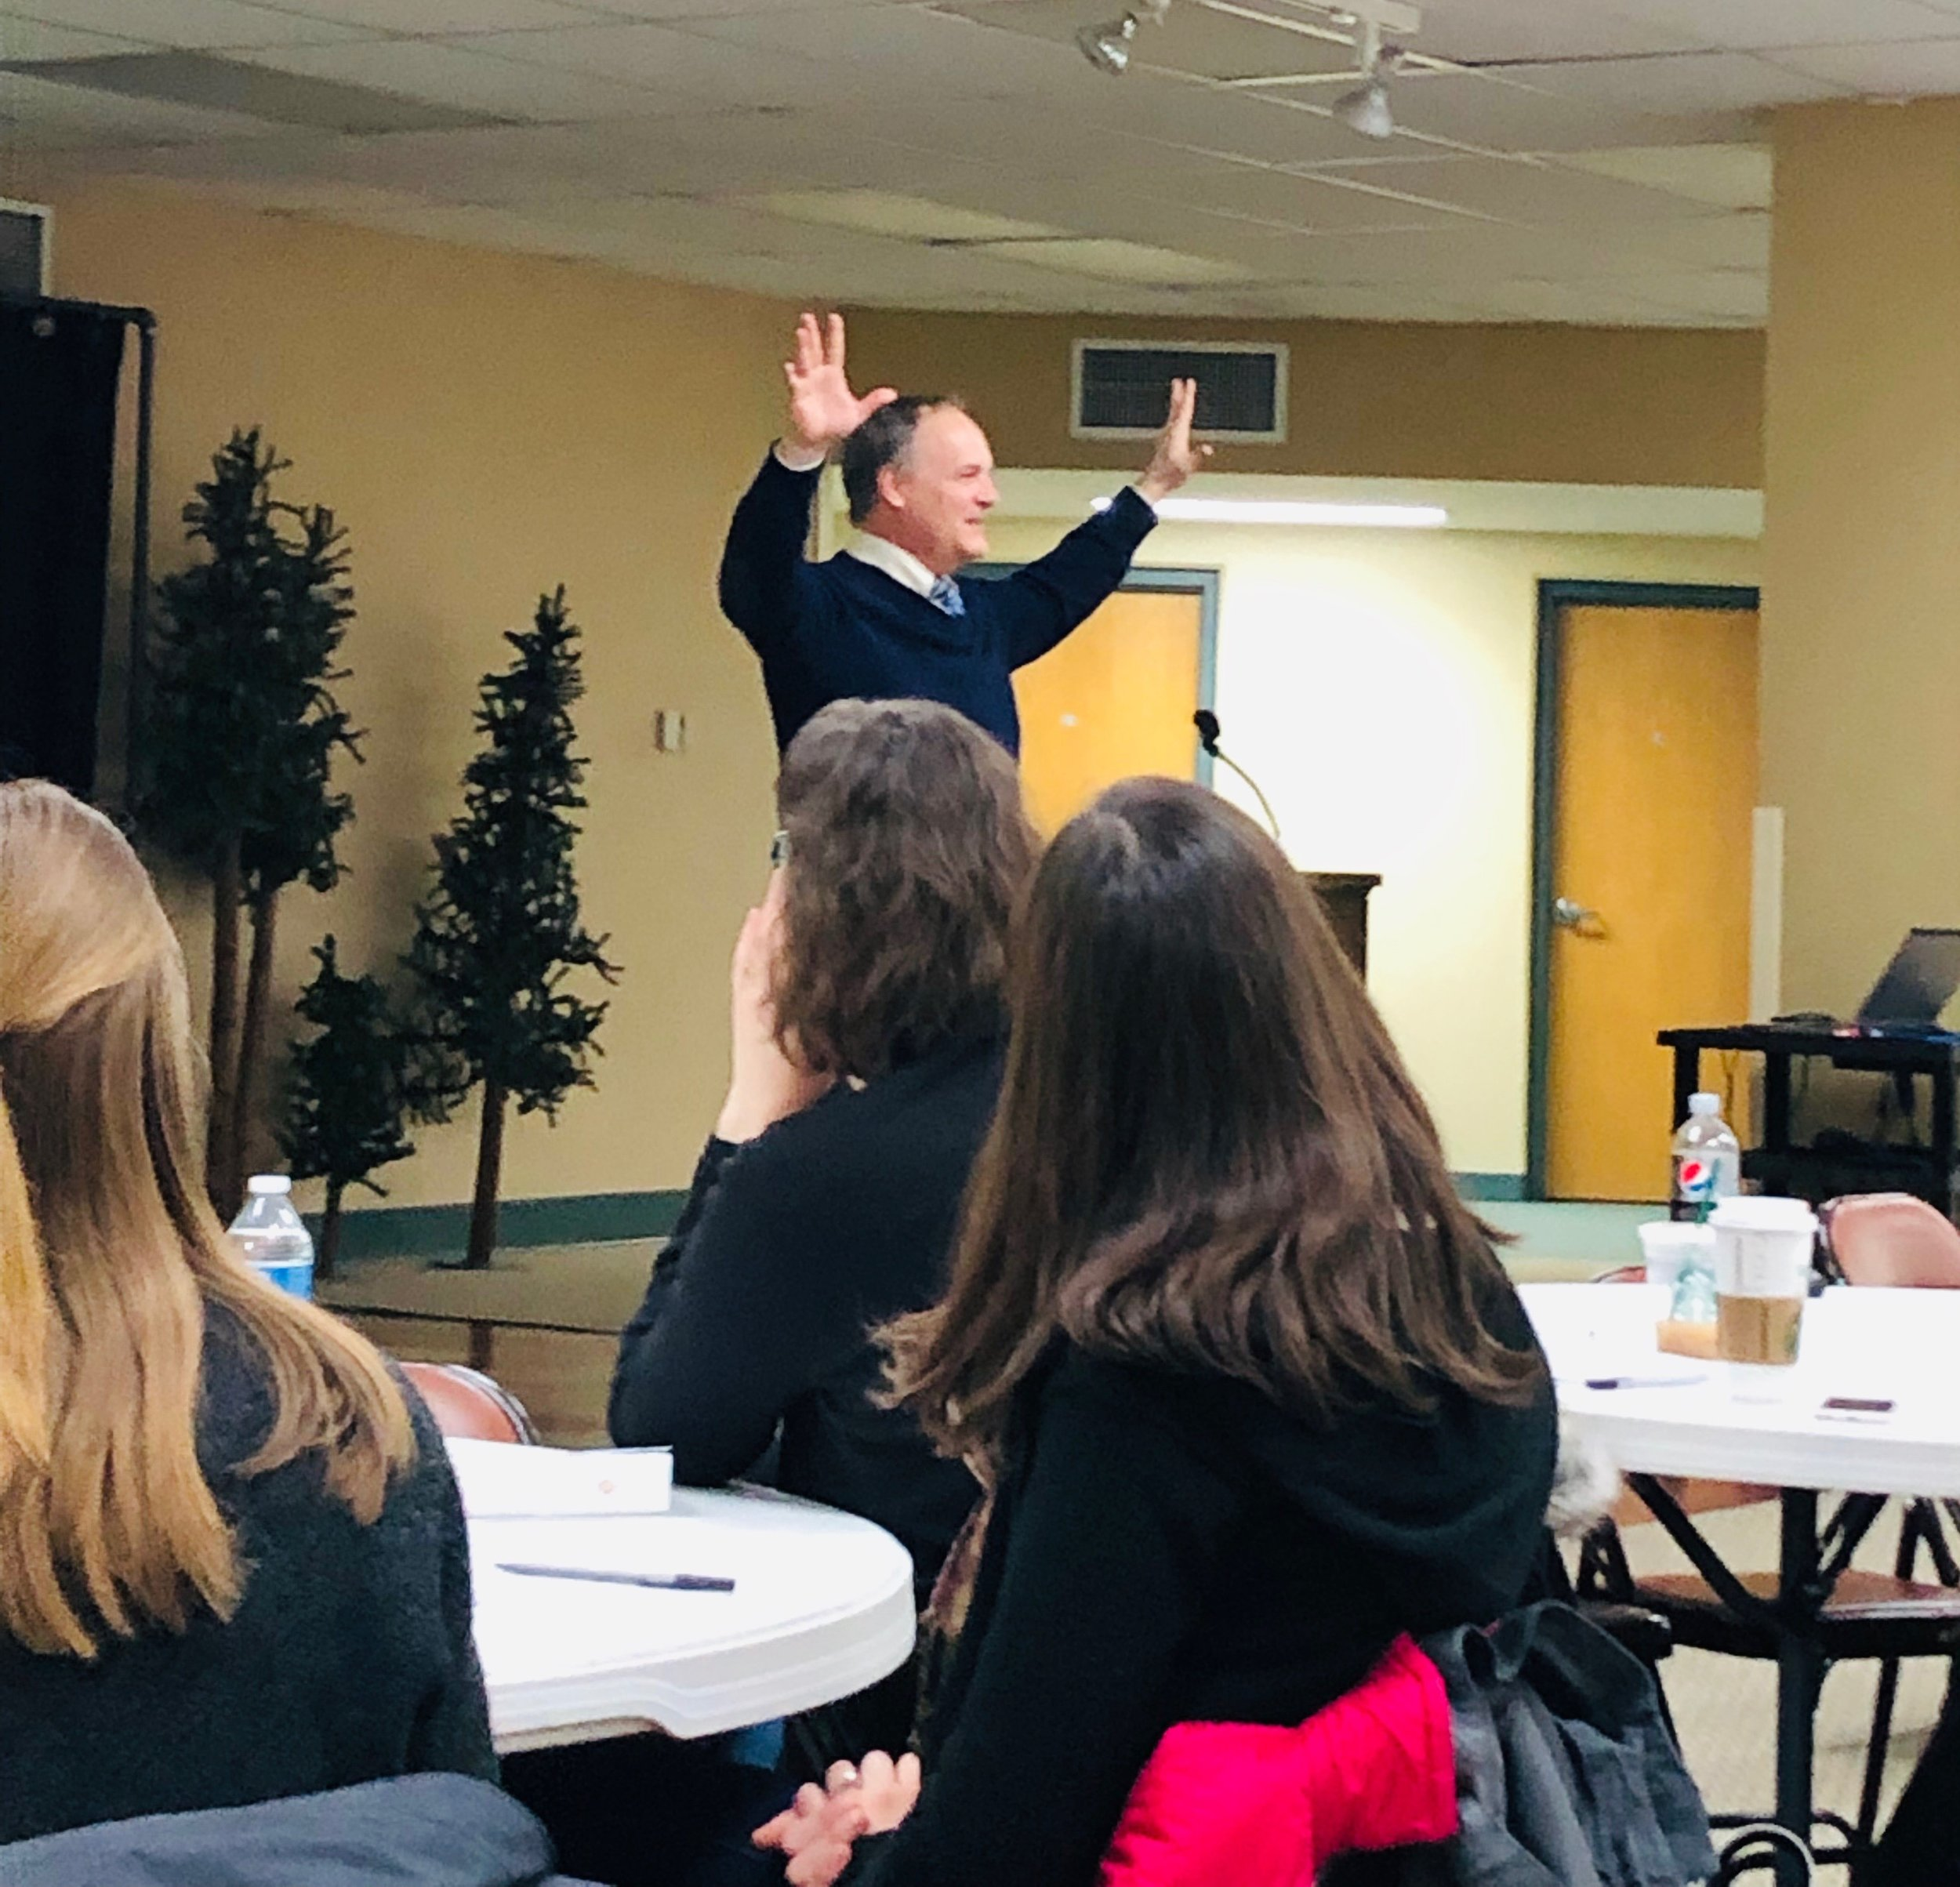 Paul teaching school teachers from the Archdiocese of Milwaukee on behalf of Cardinal Stritch University's St. Clare Center, 2019.